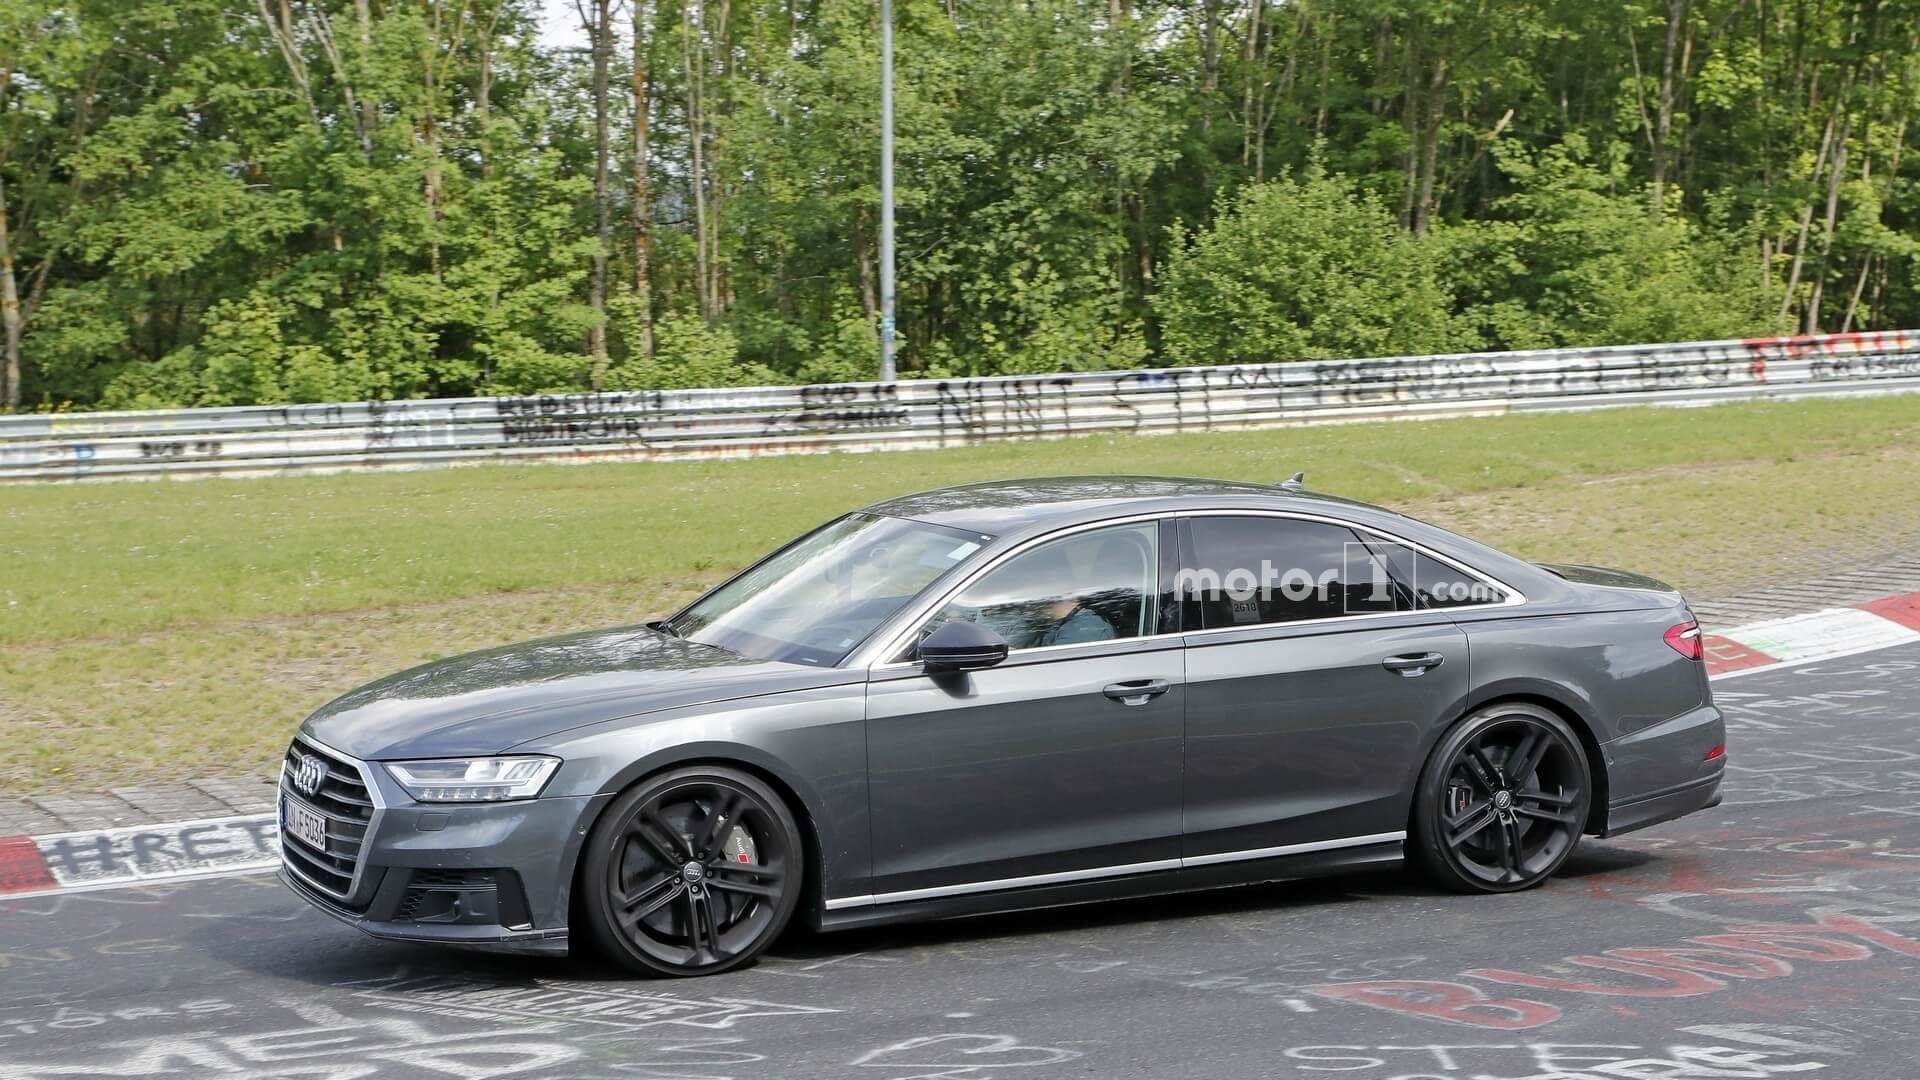 21 Best Review 2019 Audi S8 Pricing with 2019 Audi S8